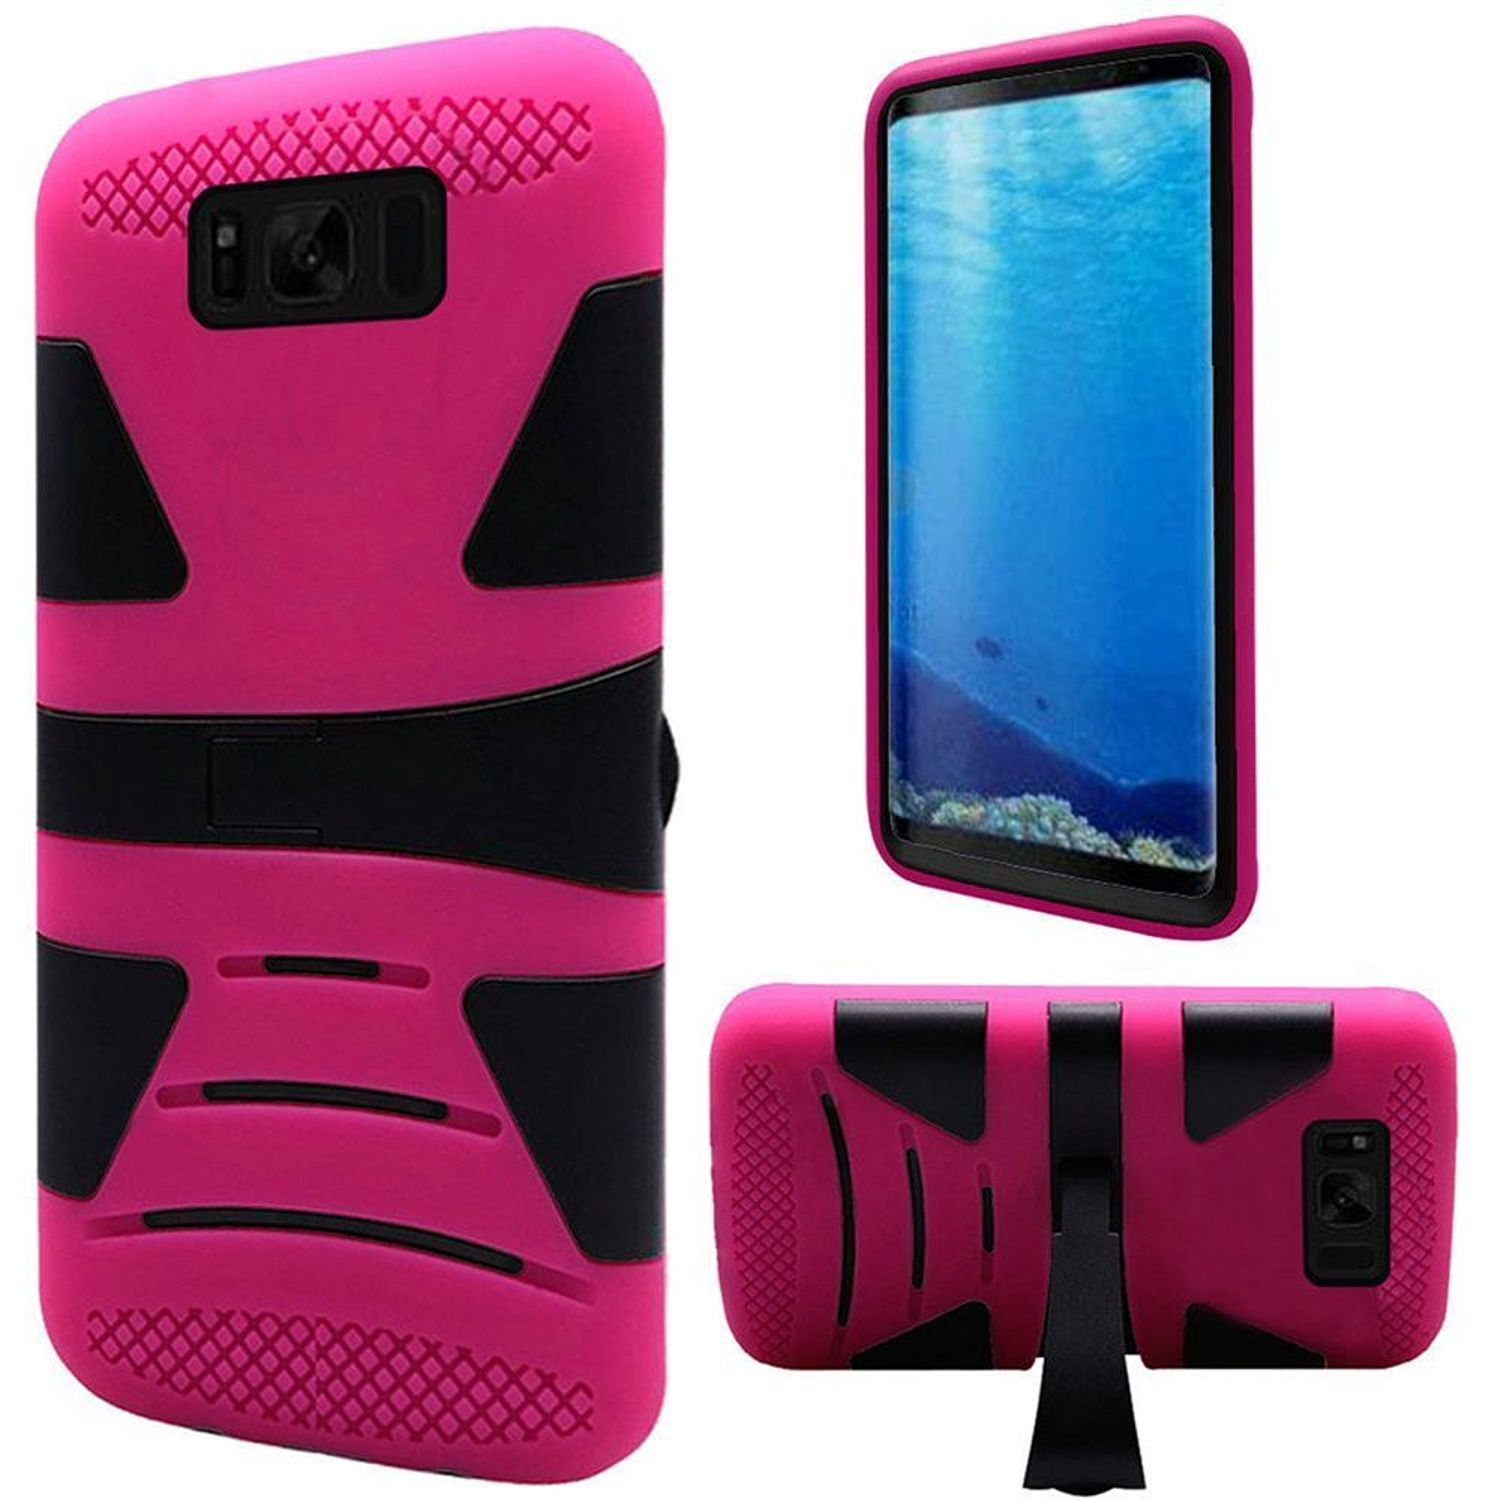 Insten Dual Layer [Shock Absorbing] Hybrid Stand Hard Plastic/Soft TPU Rubber Case Phone Cover For Samsung Galaxy S8, Black/Hot Pink